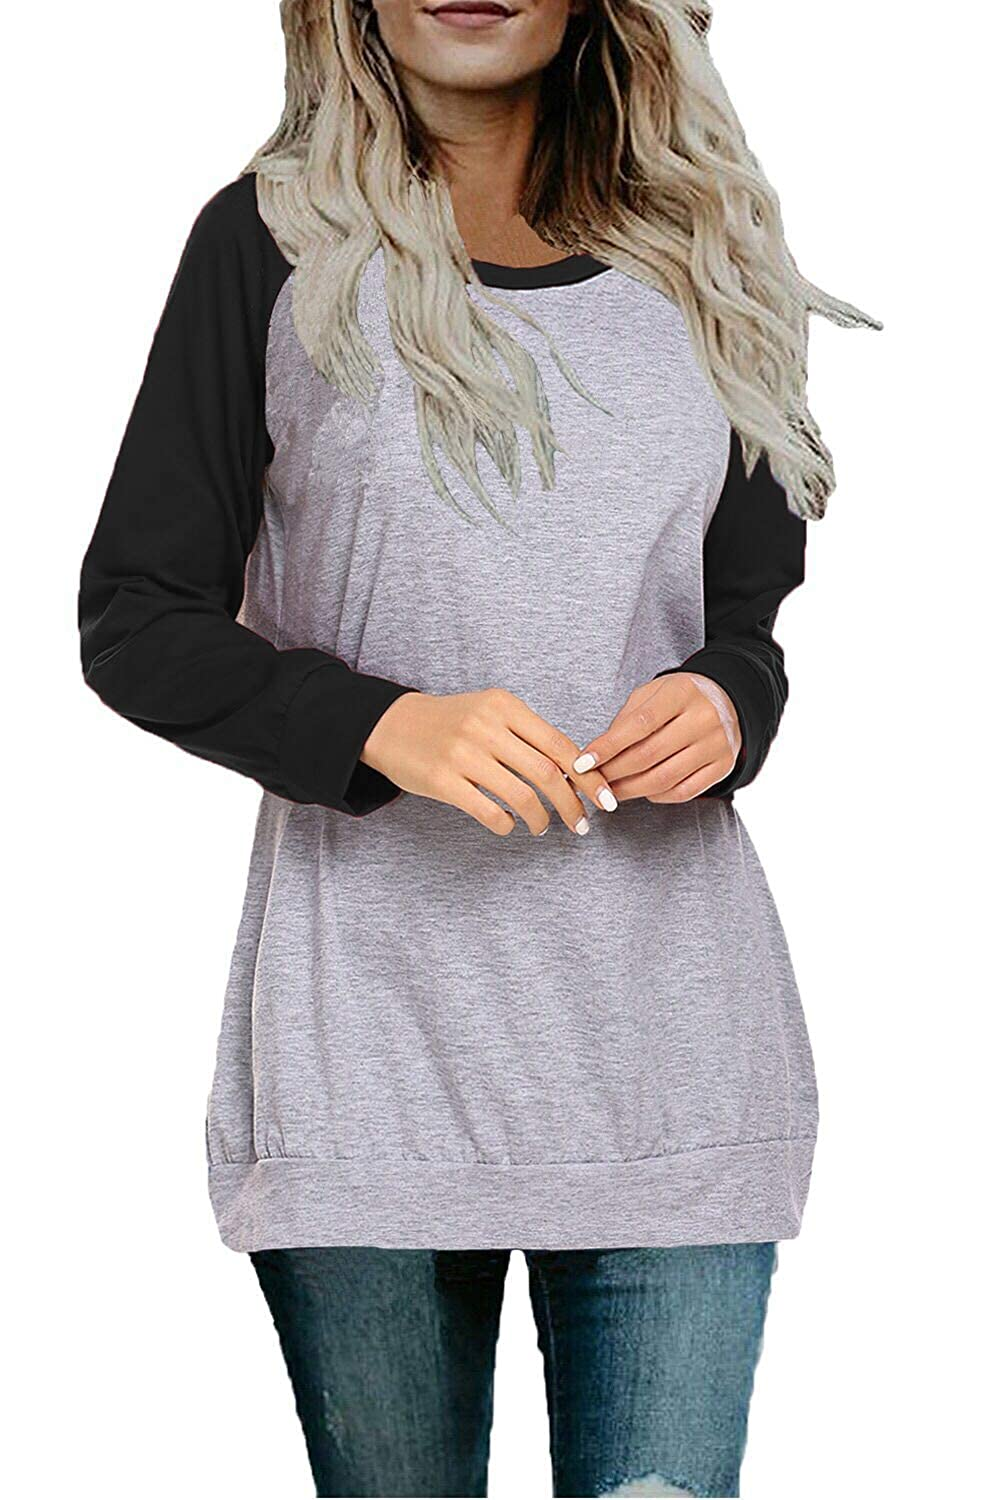 84199598e Long raglan sleeve blouses with crew neck design,loose,soft and gorgeous.  Four colors of the sleeves are available:Black,Navy Blue,Wine Red and ...